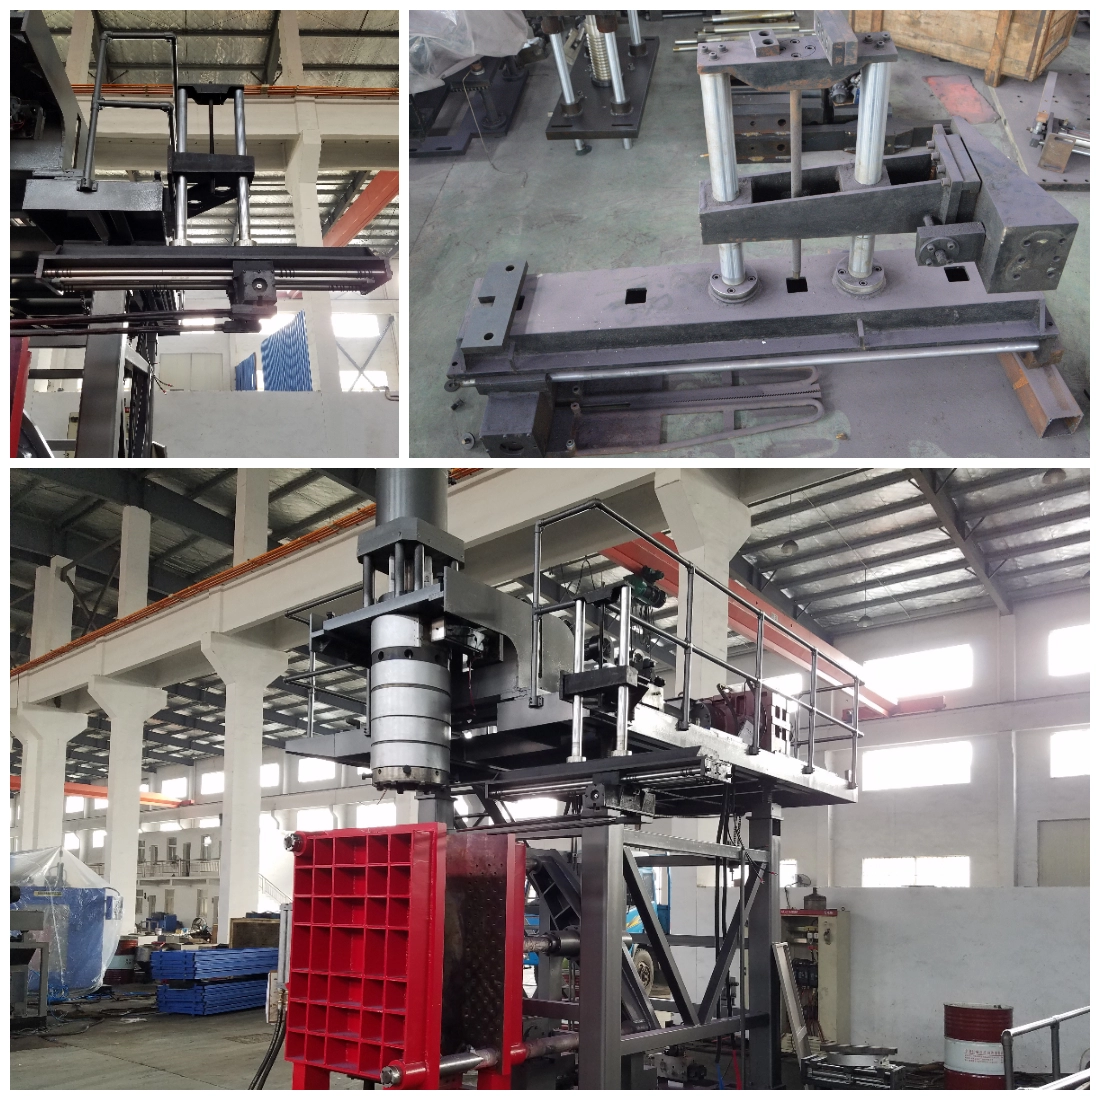 China Blow Molding Machine Manufacturers, China Blow Molding Machine Factory, Supply China Blow Molding Machine